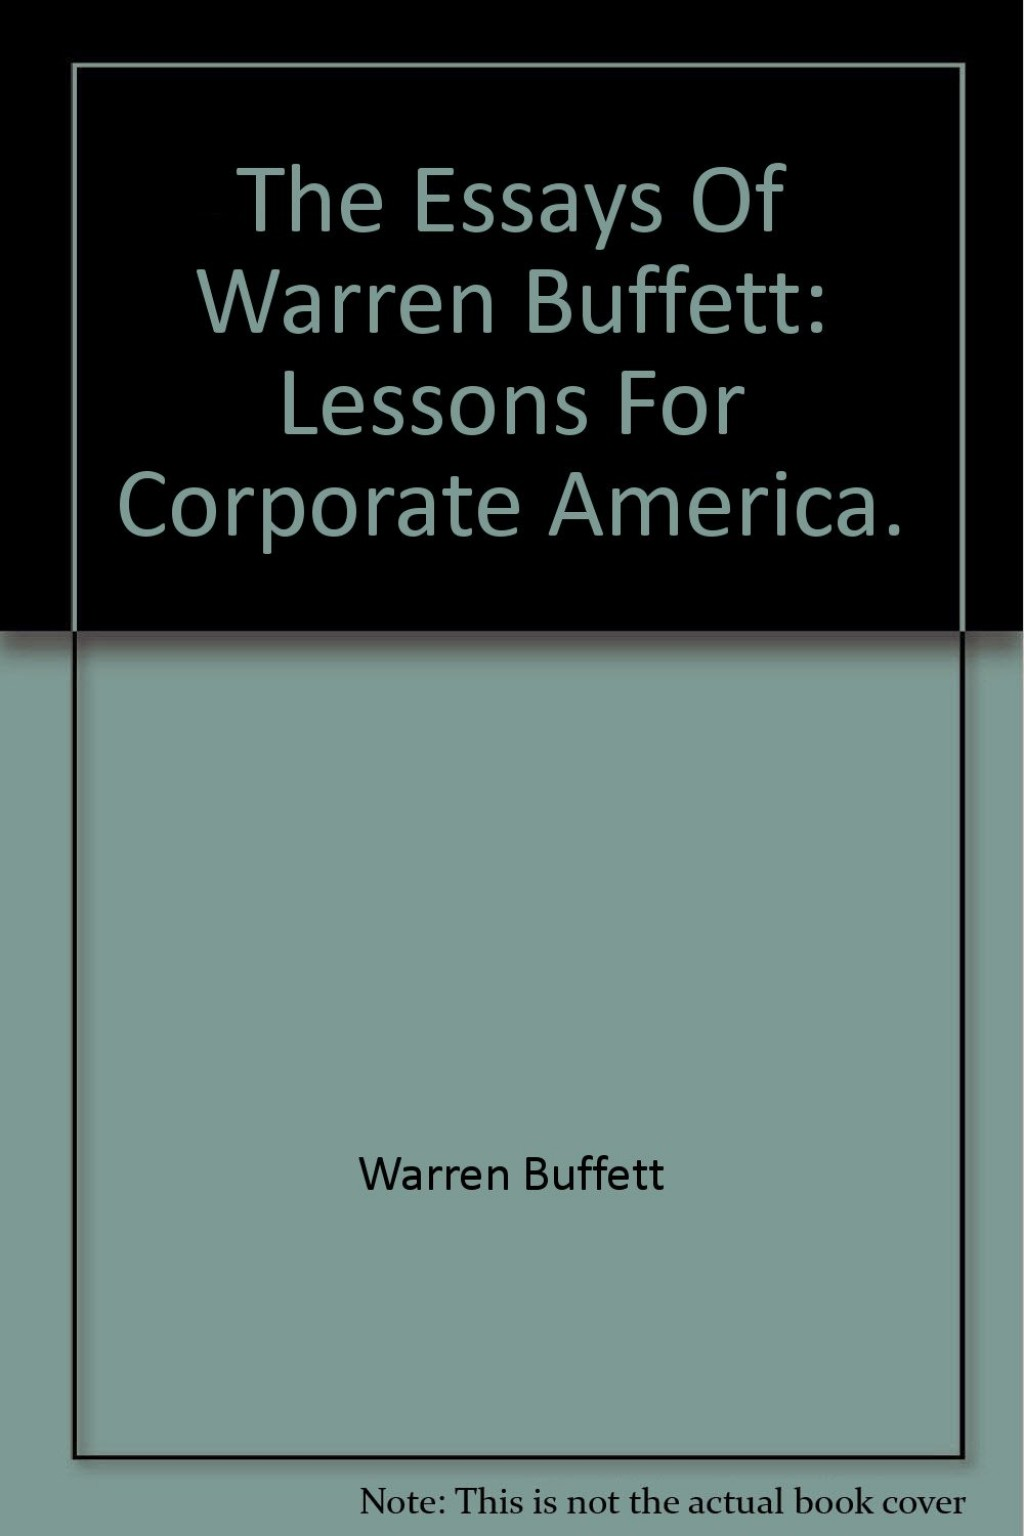 006 61wo12biiixl The Essays Of Warren Buffett Lessons For Corporate America Essay Remarkable Third Edition 3rd Second Pdf Audio Book Large